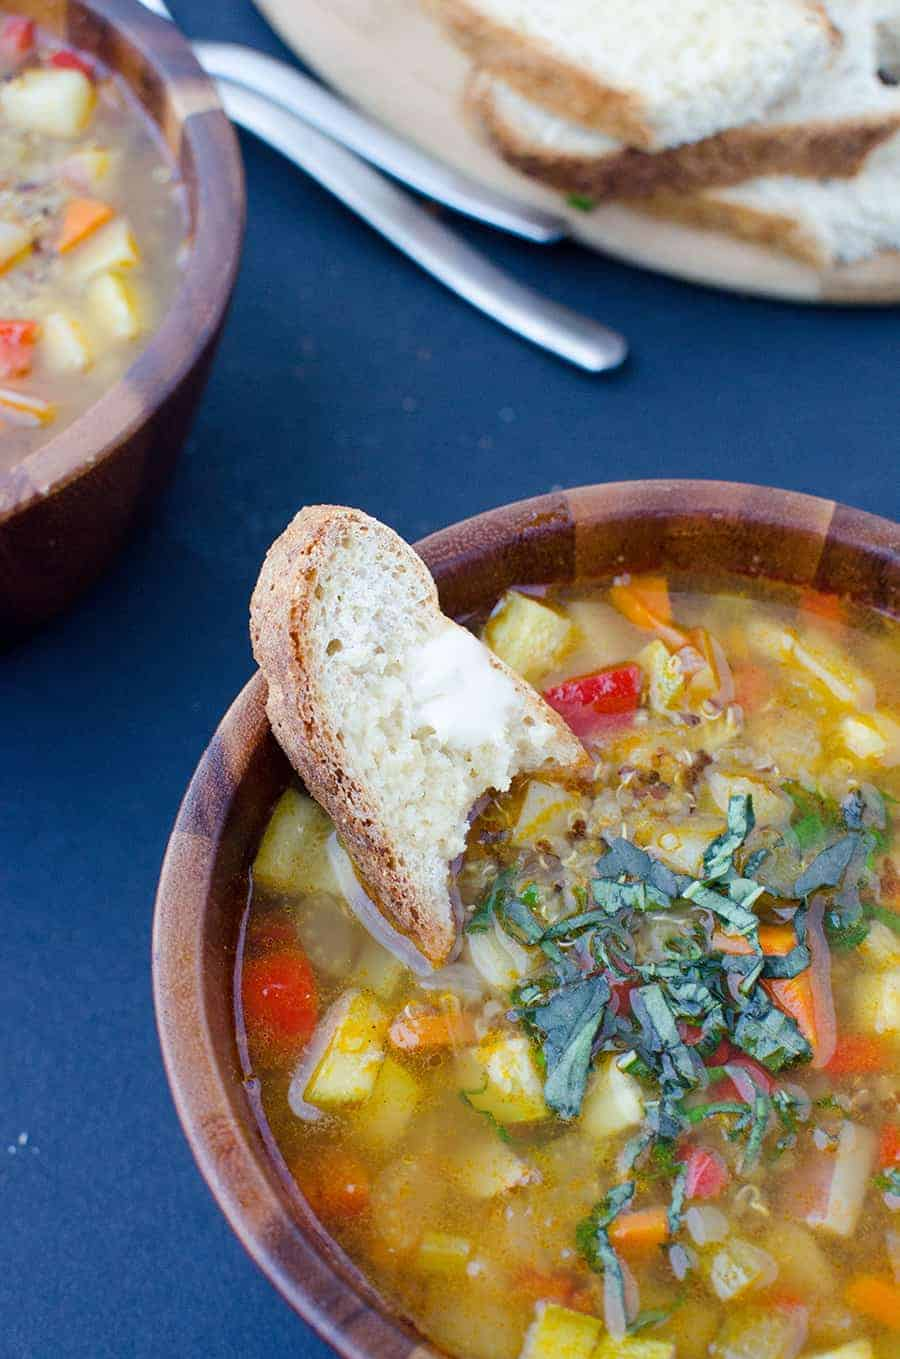 Chunky Vegetable Soup! A healthy, simple soup that's perfect anytime of the year. Vegeables and potatoes simmered in a lightly spiced broth. Served with quinoa. #Vegan and #GlutenFree